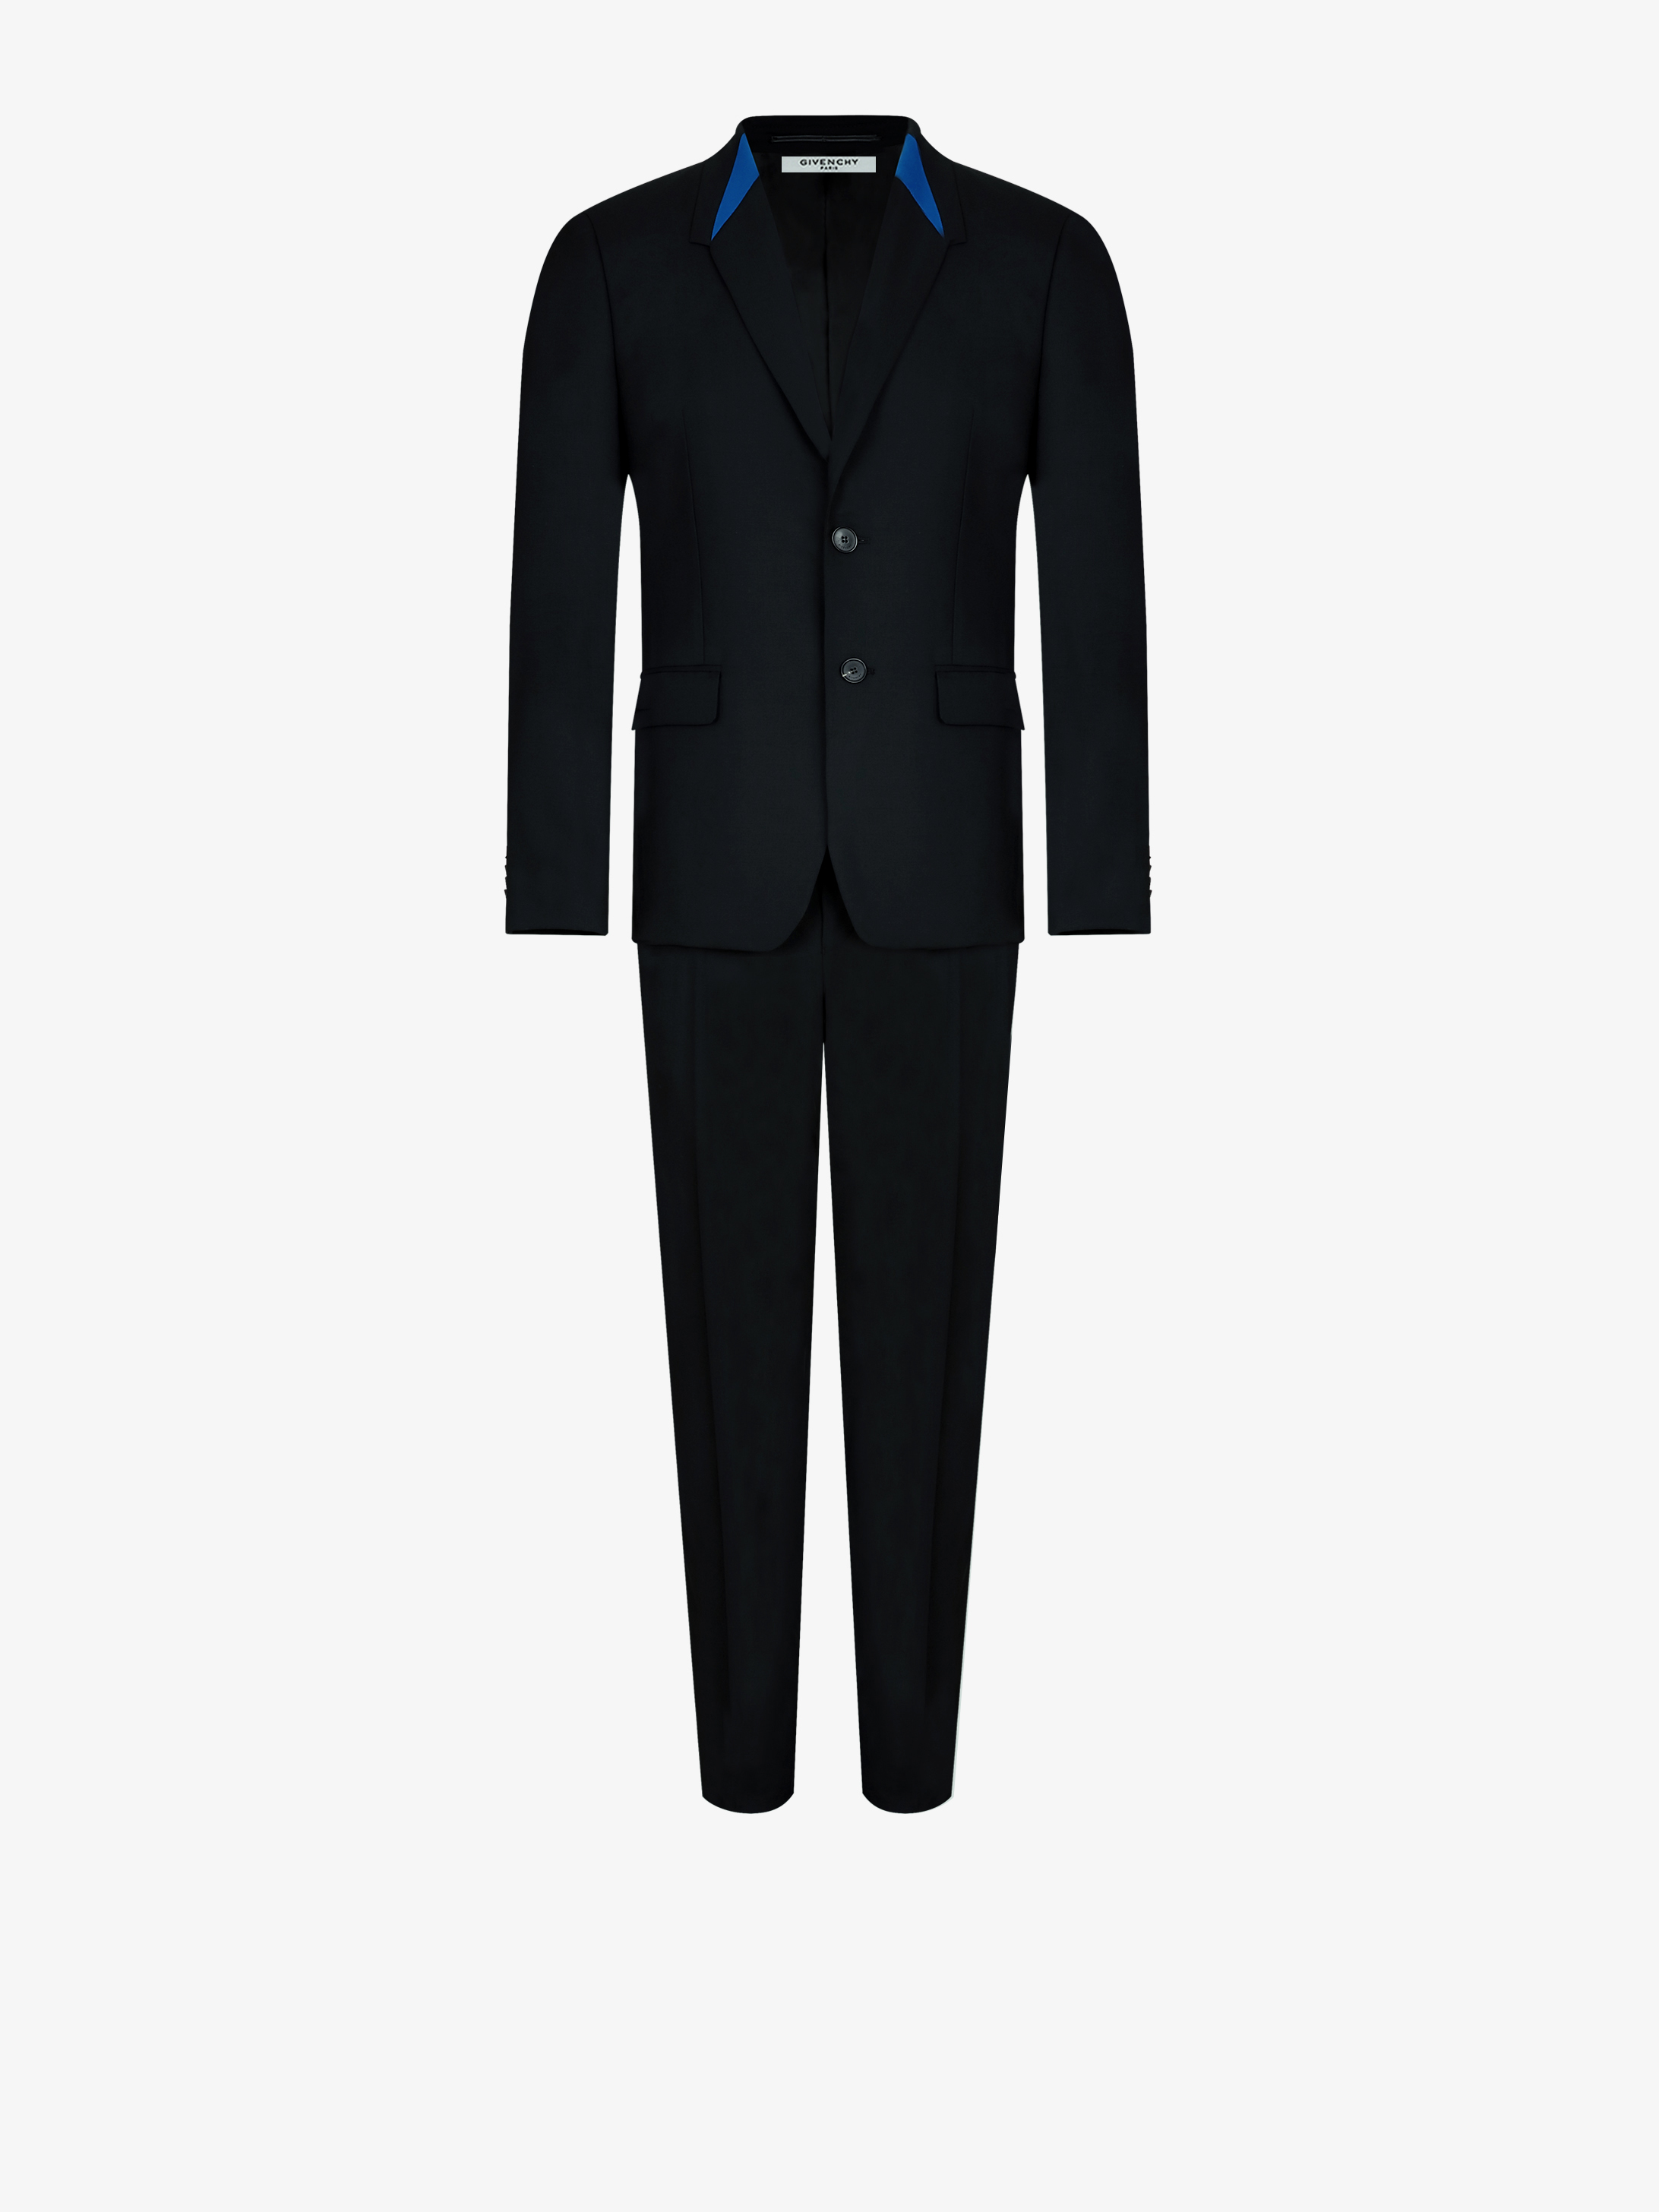 Regular fit suit with graphic collar